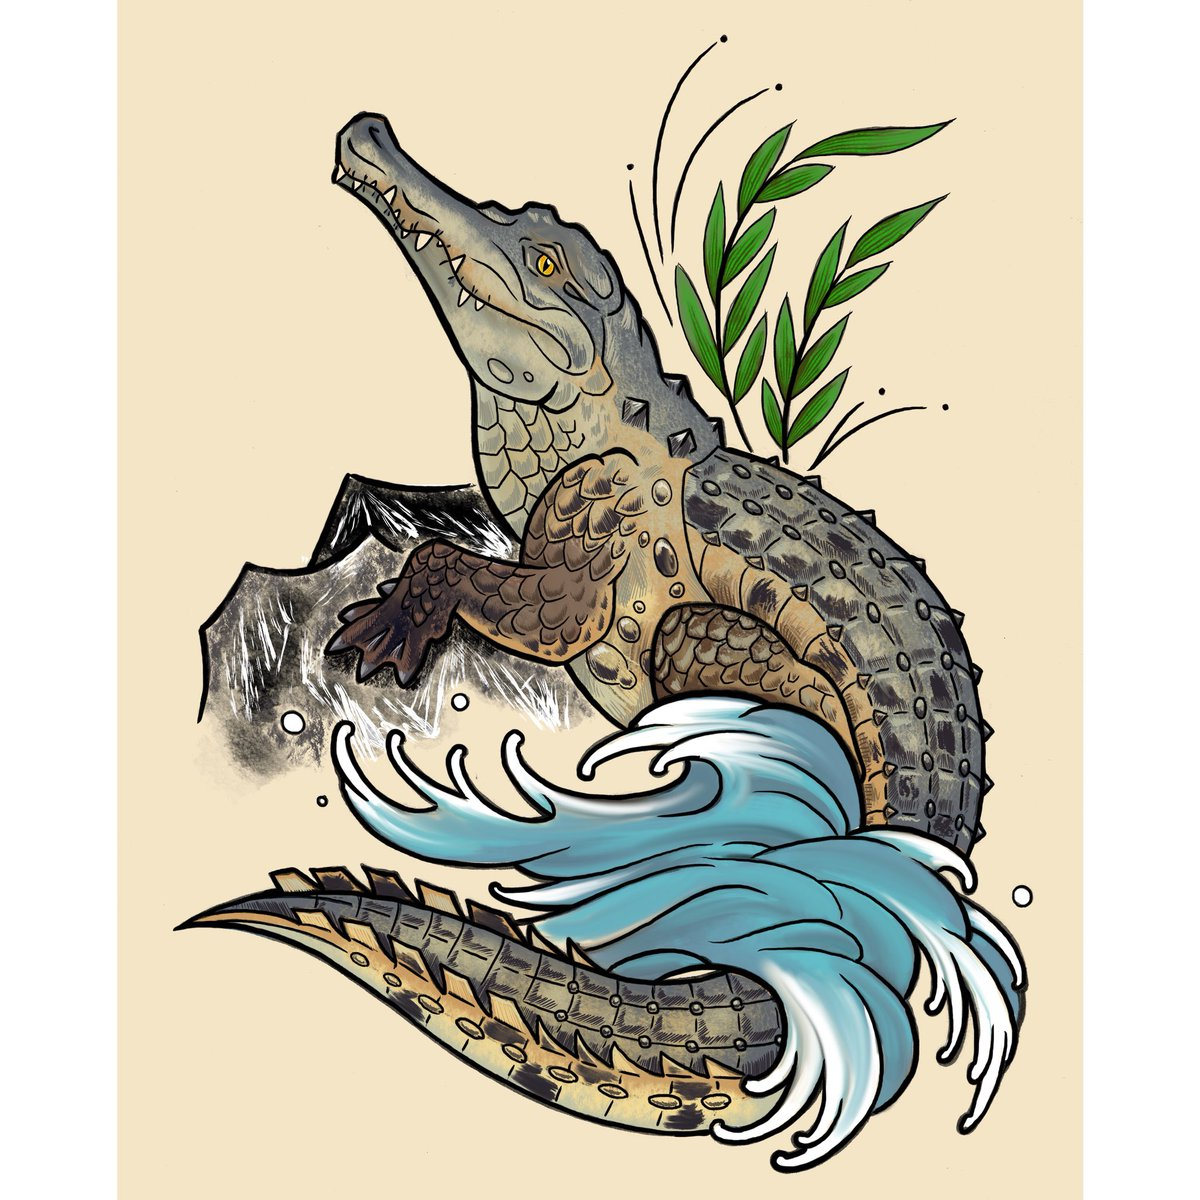 painting of an orinoco crocodile, full body profile facing left